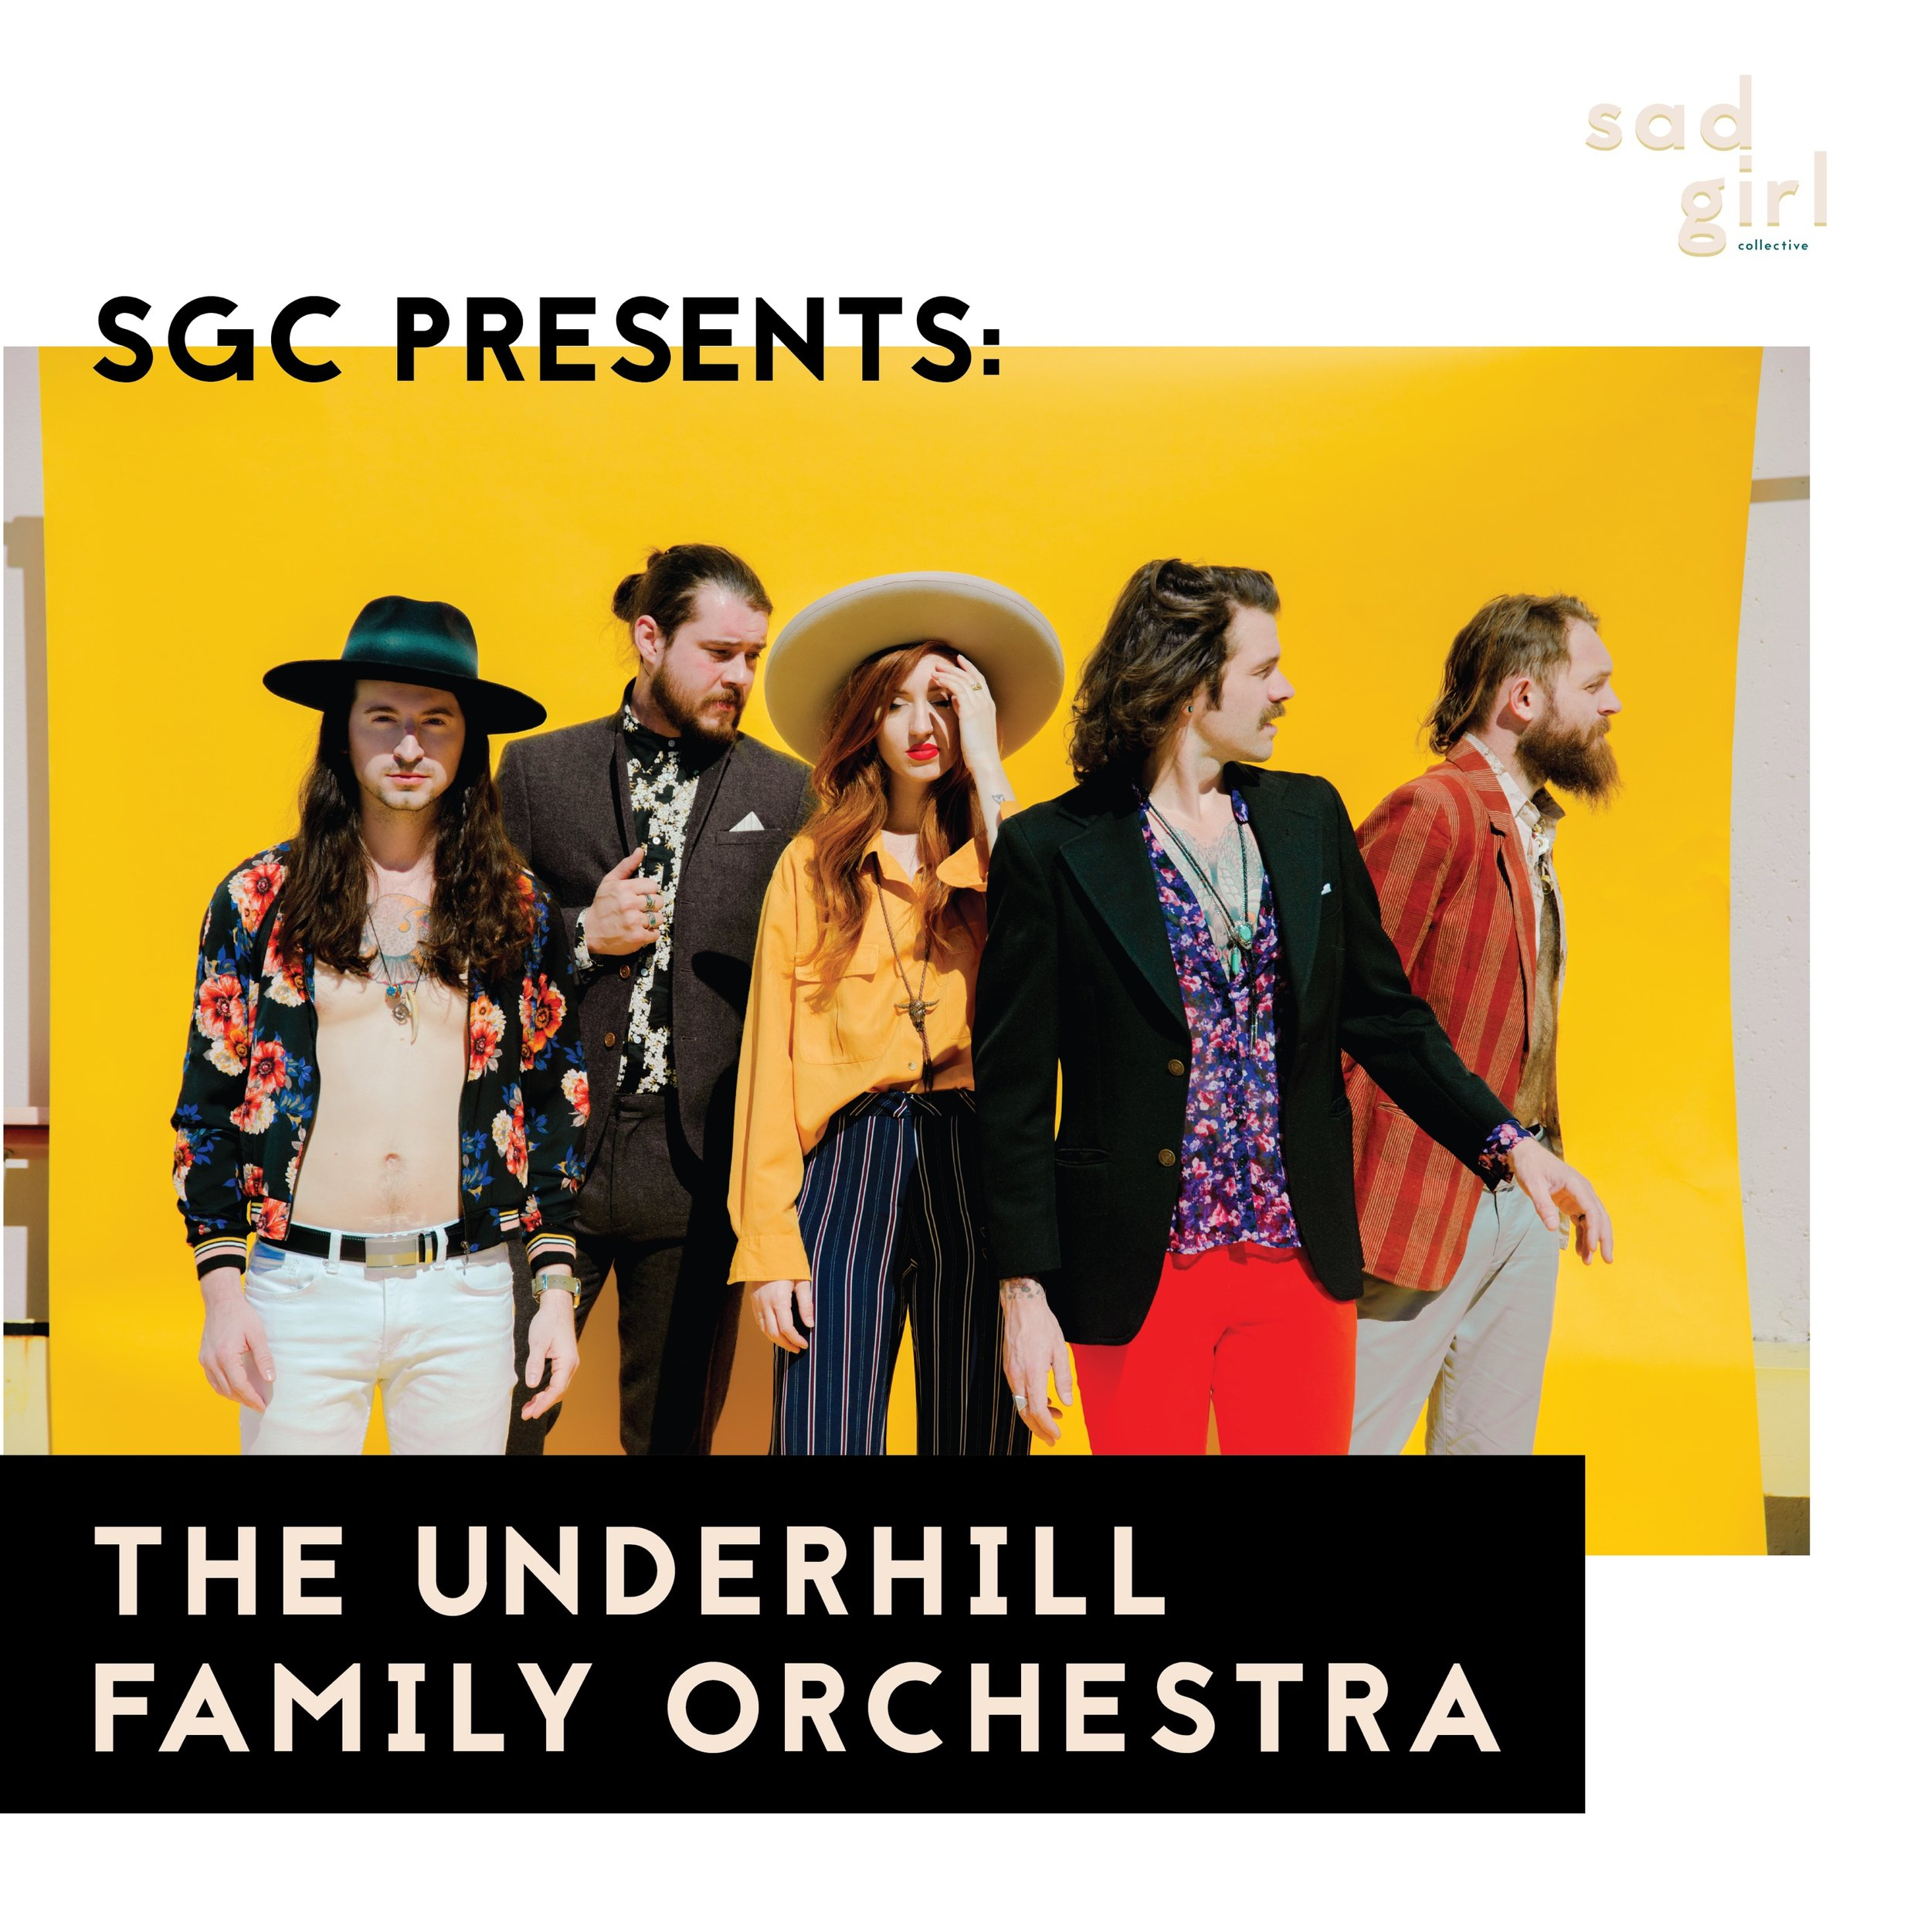 Making Music Across State Lines: A Look at The Underhill Family Orchestra